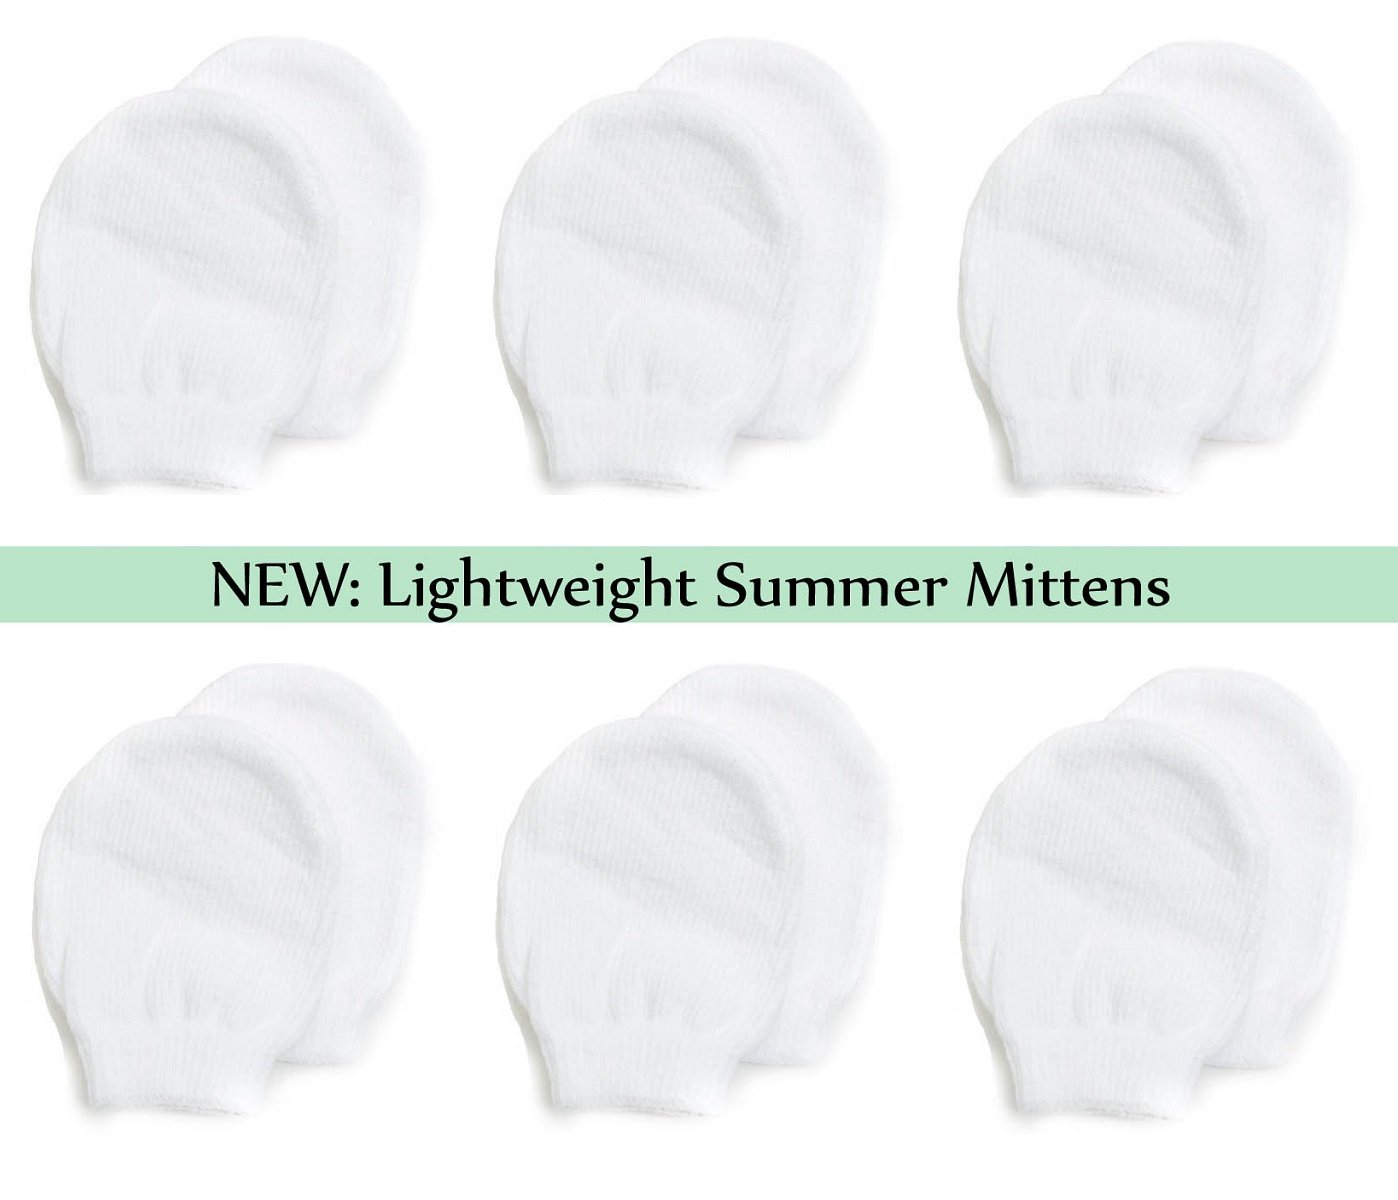 d3bf92e787c3 Amazon.com  Lightweight Summer Mittens for Newborns by Nurses Choice (6  Pairs of White Cotton No Scratch Mittens)  Baby